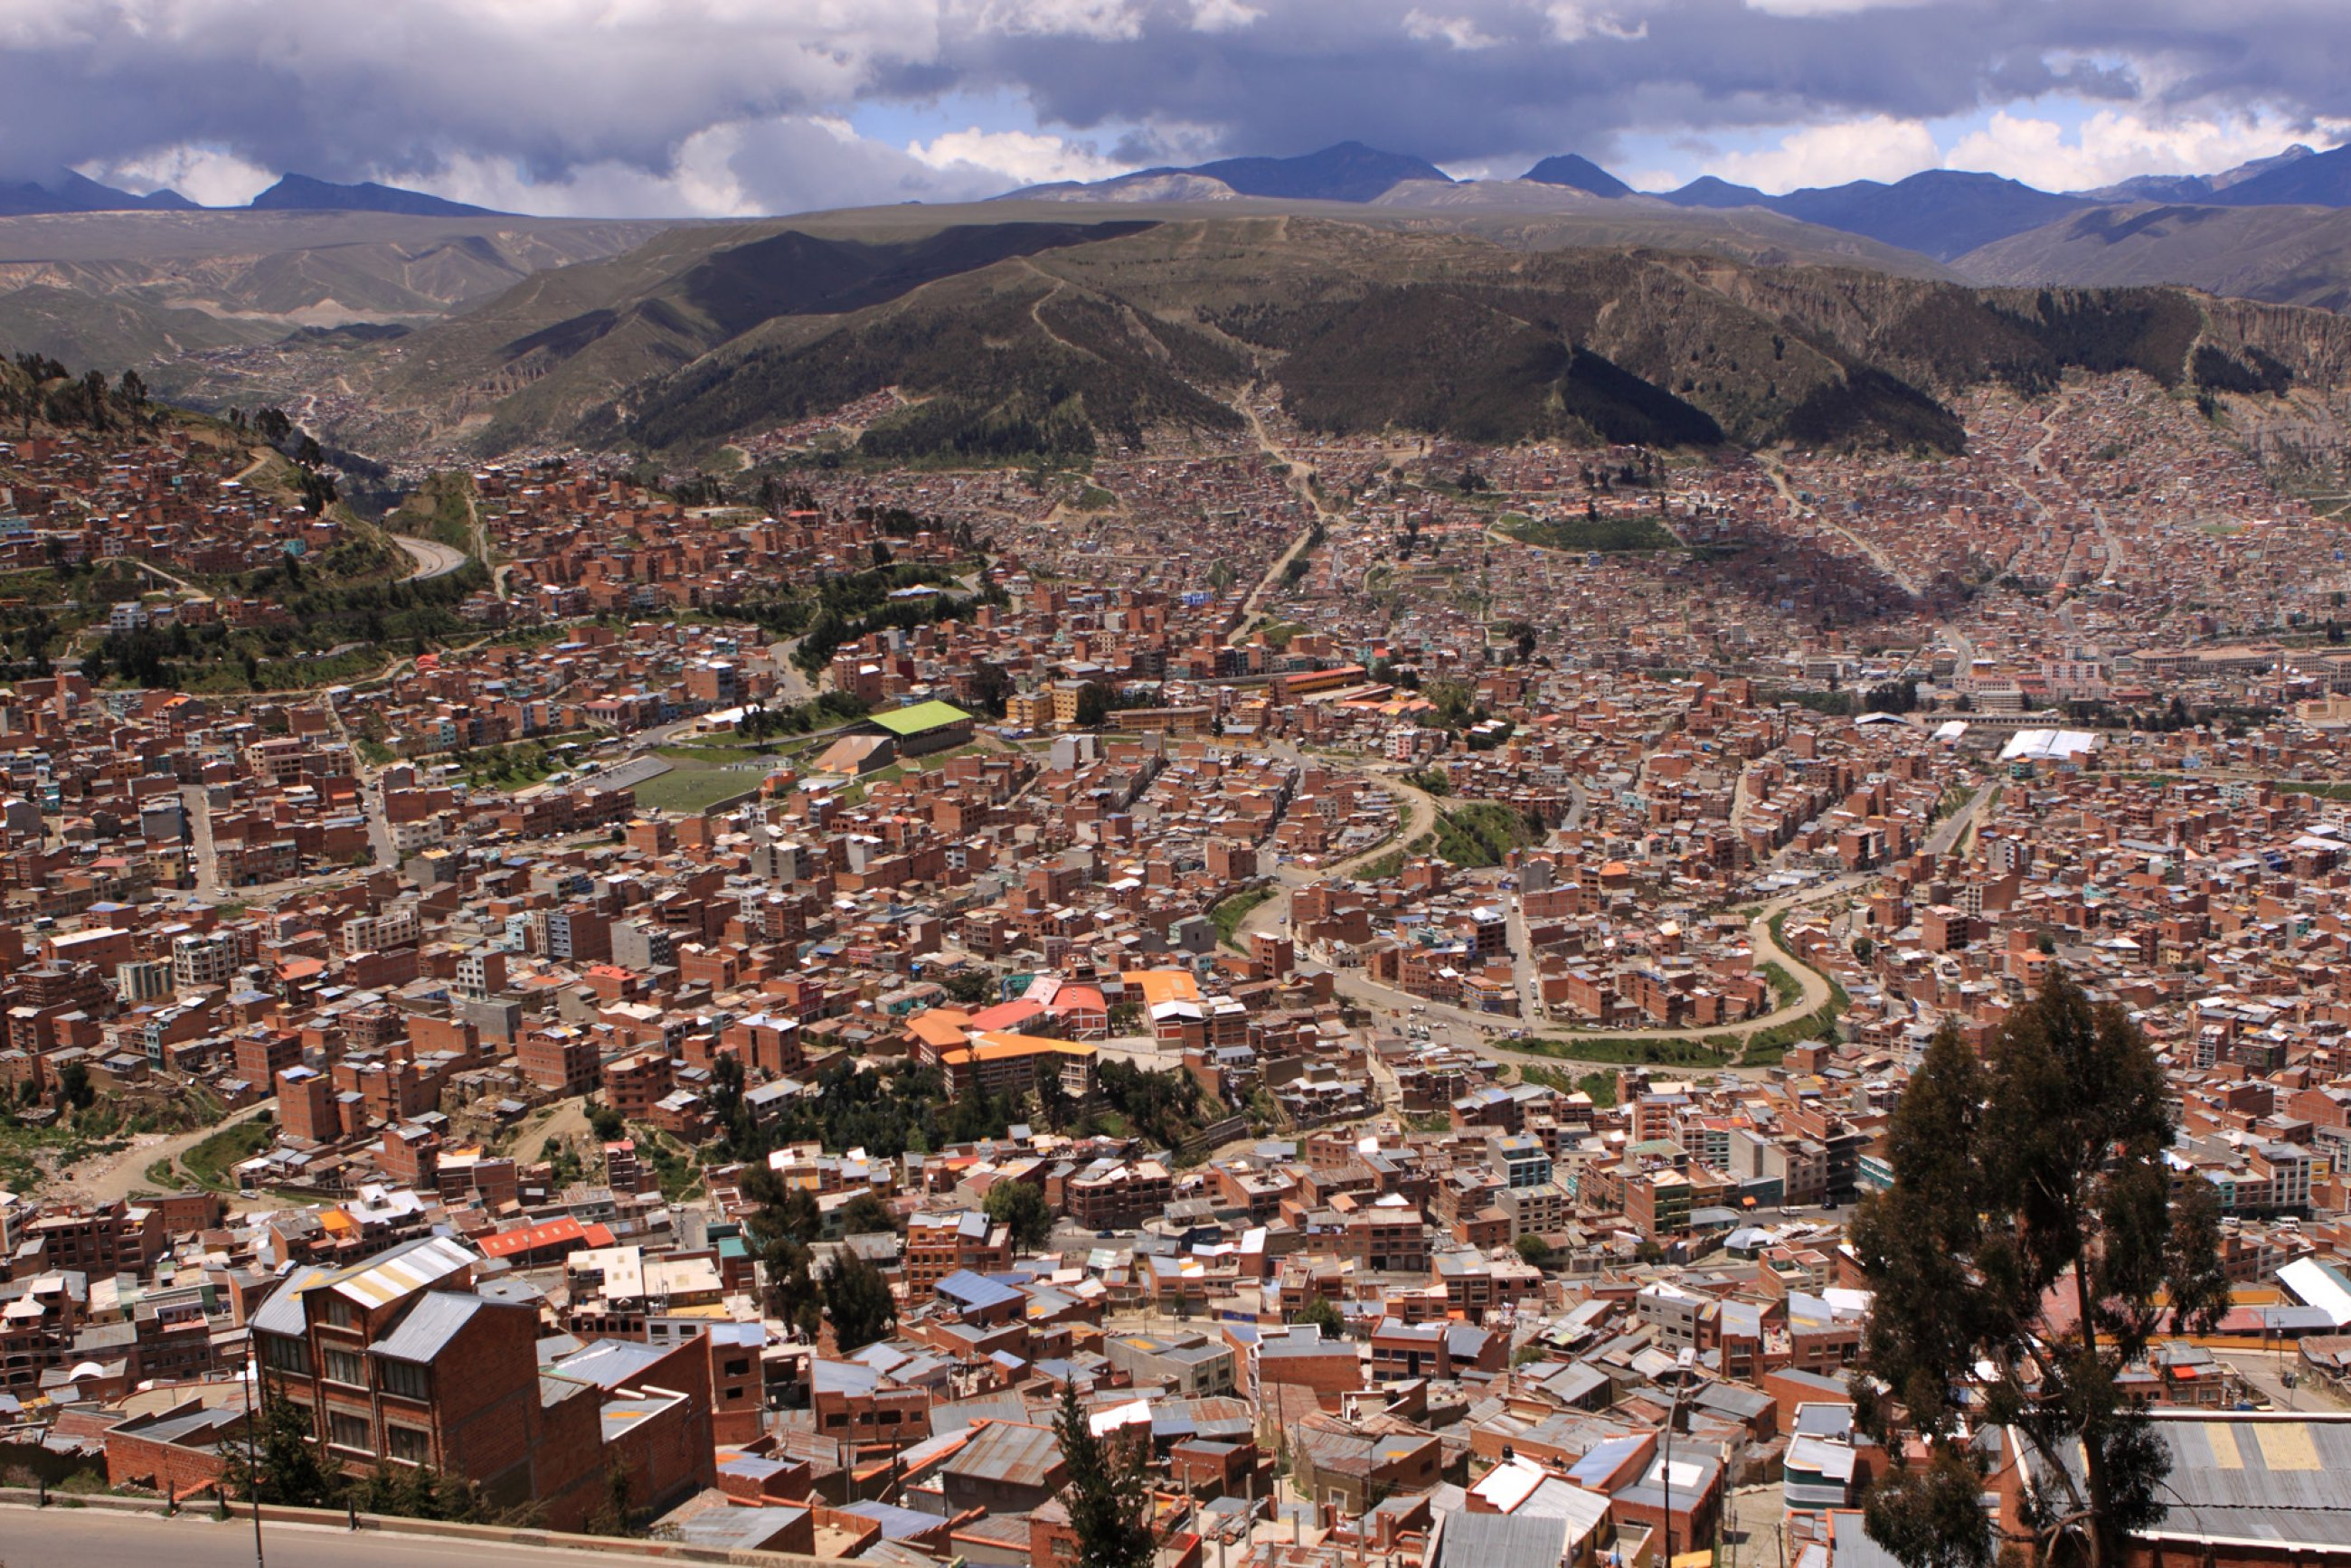 https://bubo.sk/uploads/galleries/5014/bolivia-la-paz-shutterstock-233802457-2-.jpg